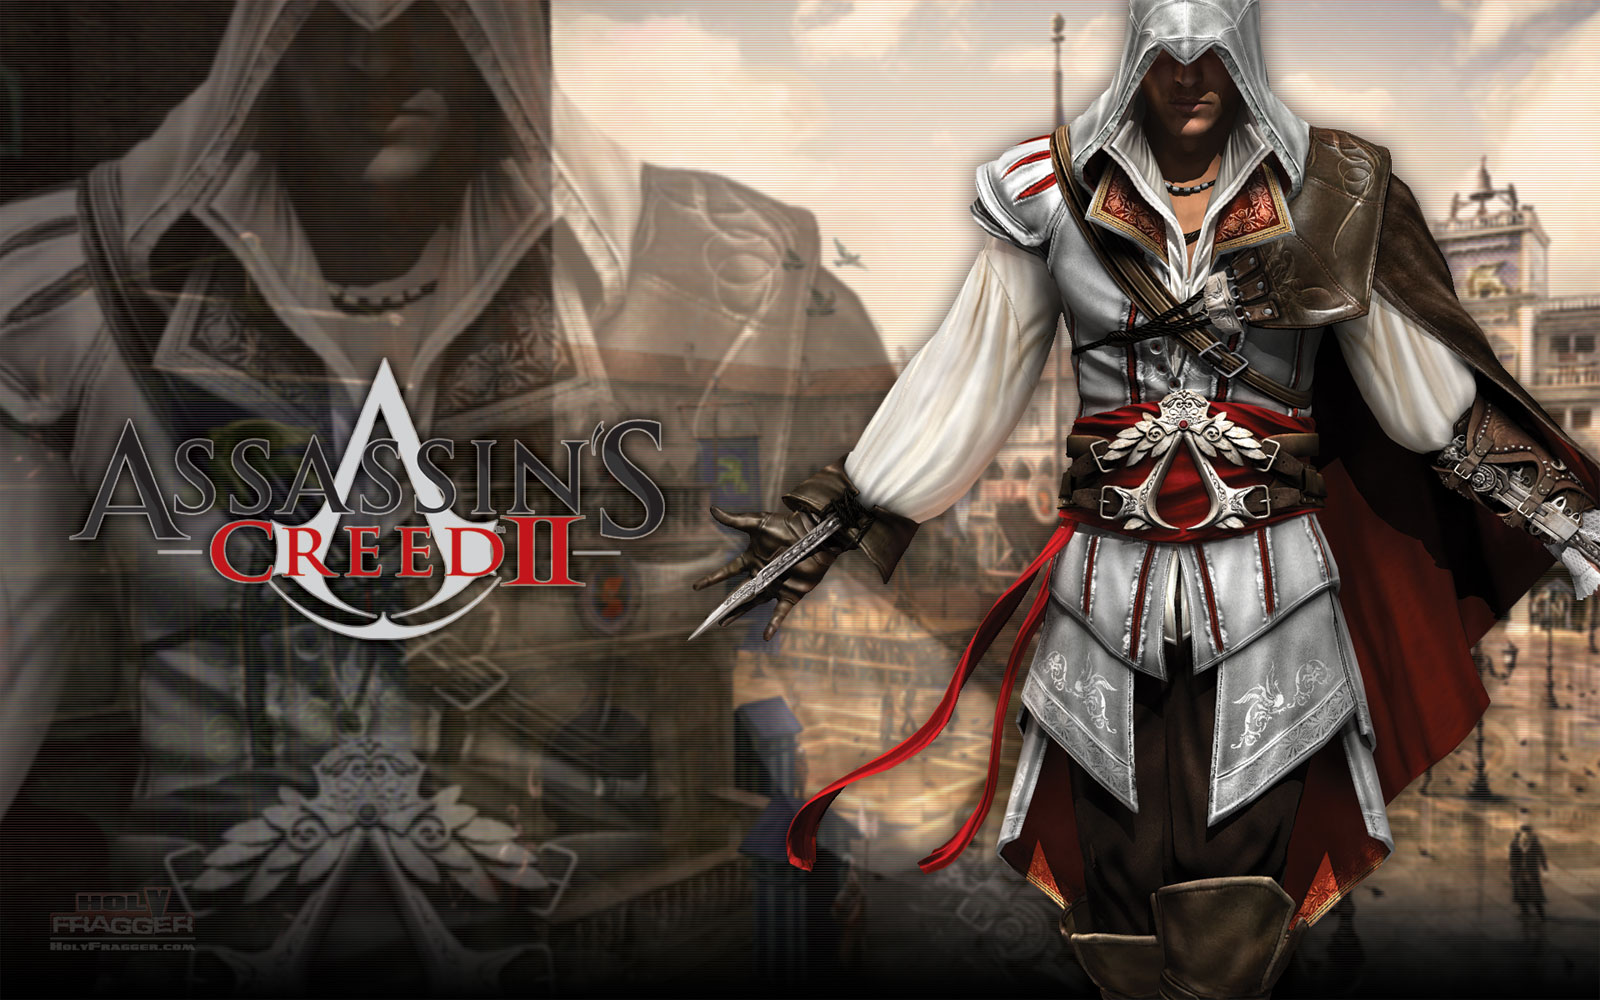 Assassins Creed 2: Assassin's Creed II Wallpapers